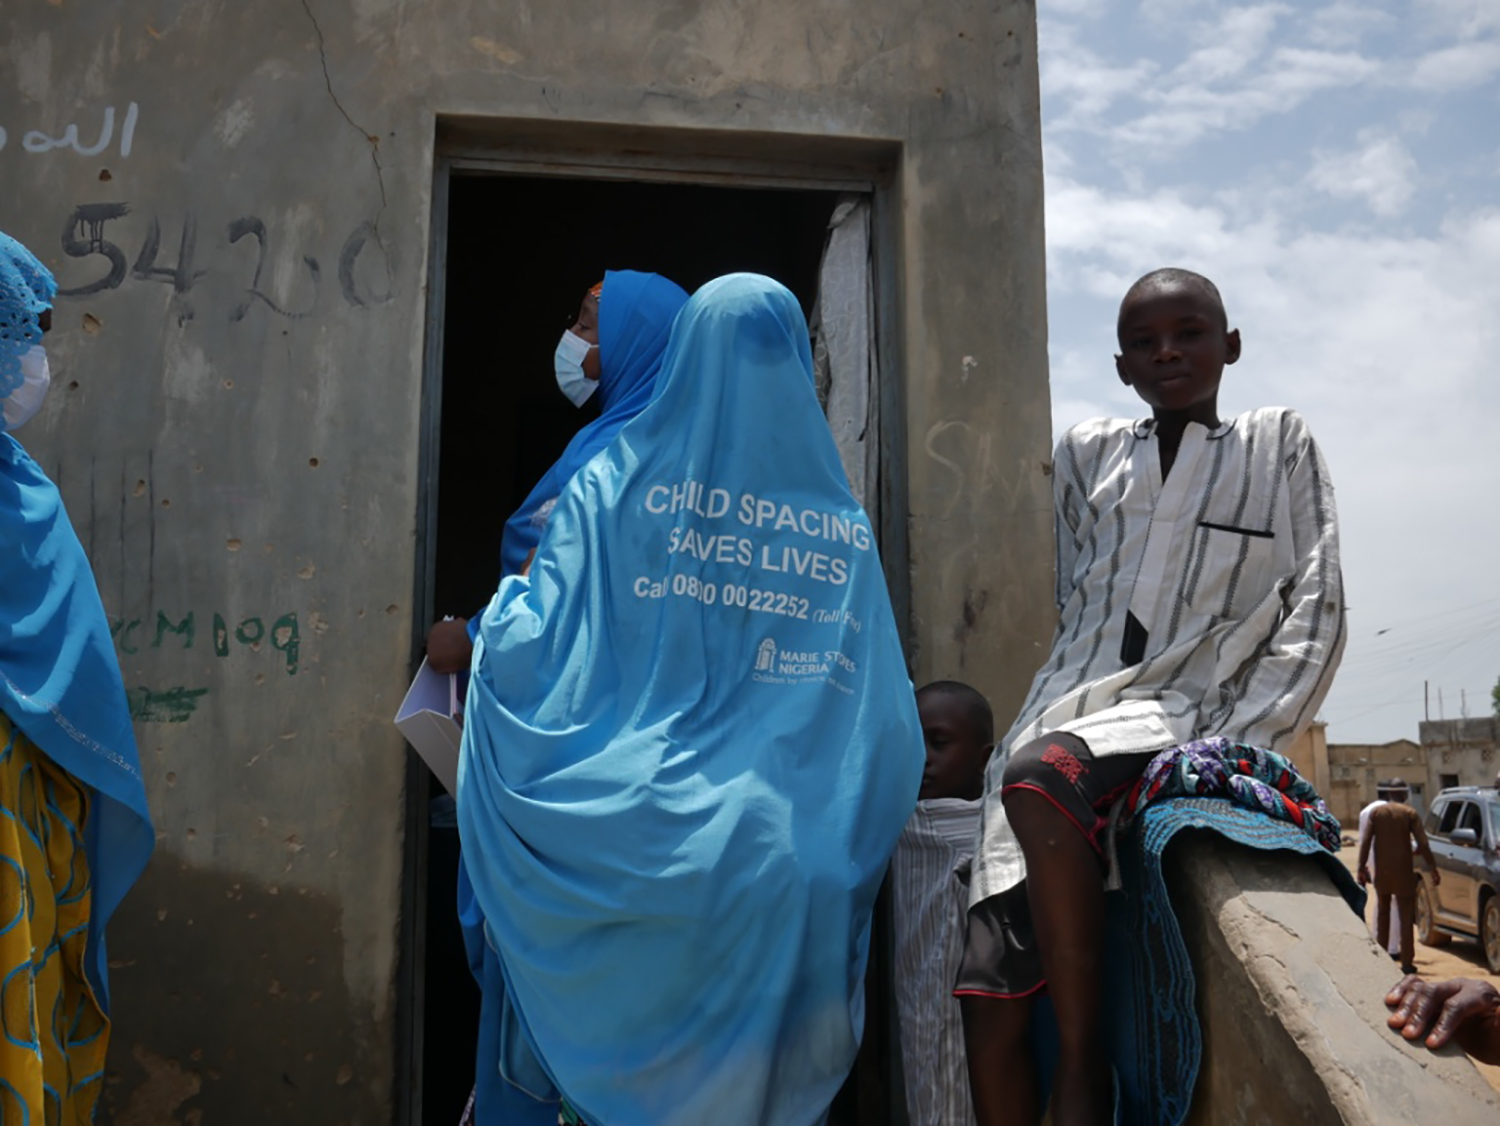 Two nurses employed by Marie Stopes Nigeria enter a compound to administer family planning services in Kano on Aug. 14. The women come around 1 p.m., which coincides with the Friday congregational prayer that all men must attend, enabling their wives to more freely talk about their needs.